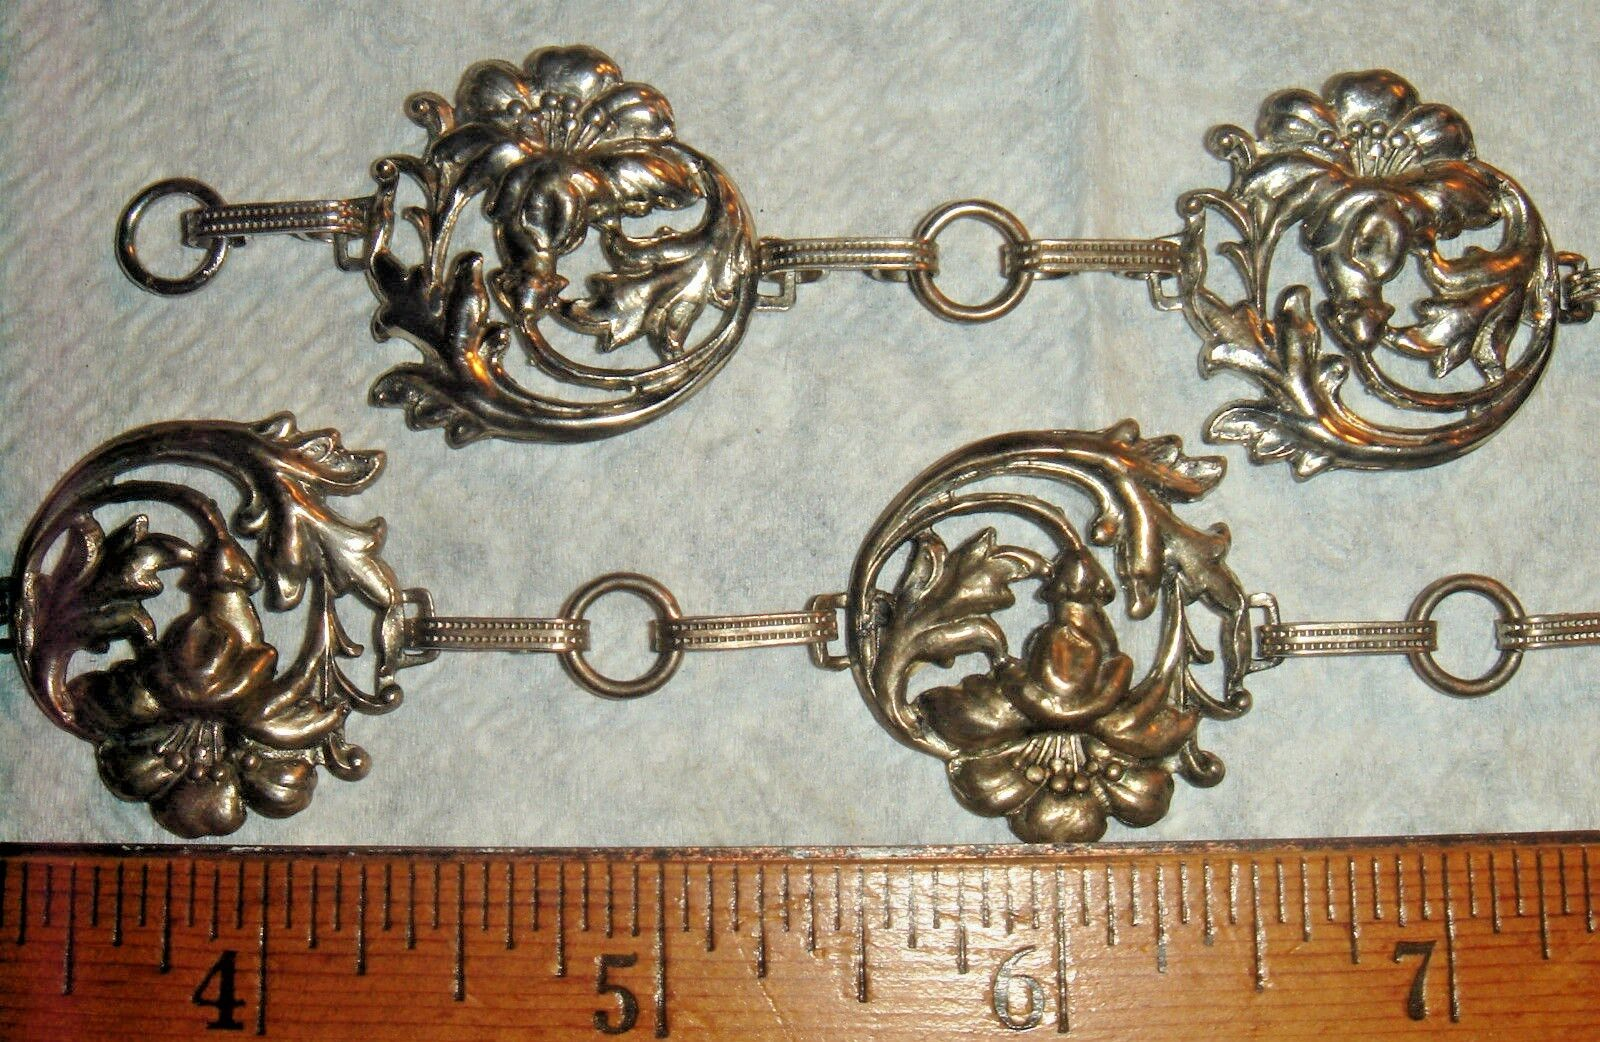 VTG RARE OOAK ART DECO STERLING SILVER FORGET ME NOT BLOSSOM FLOWER BRACELET SET